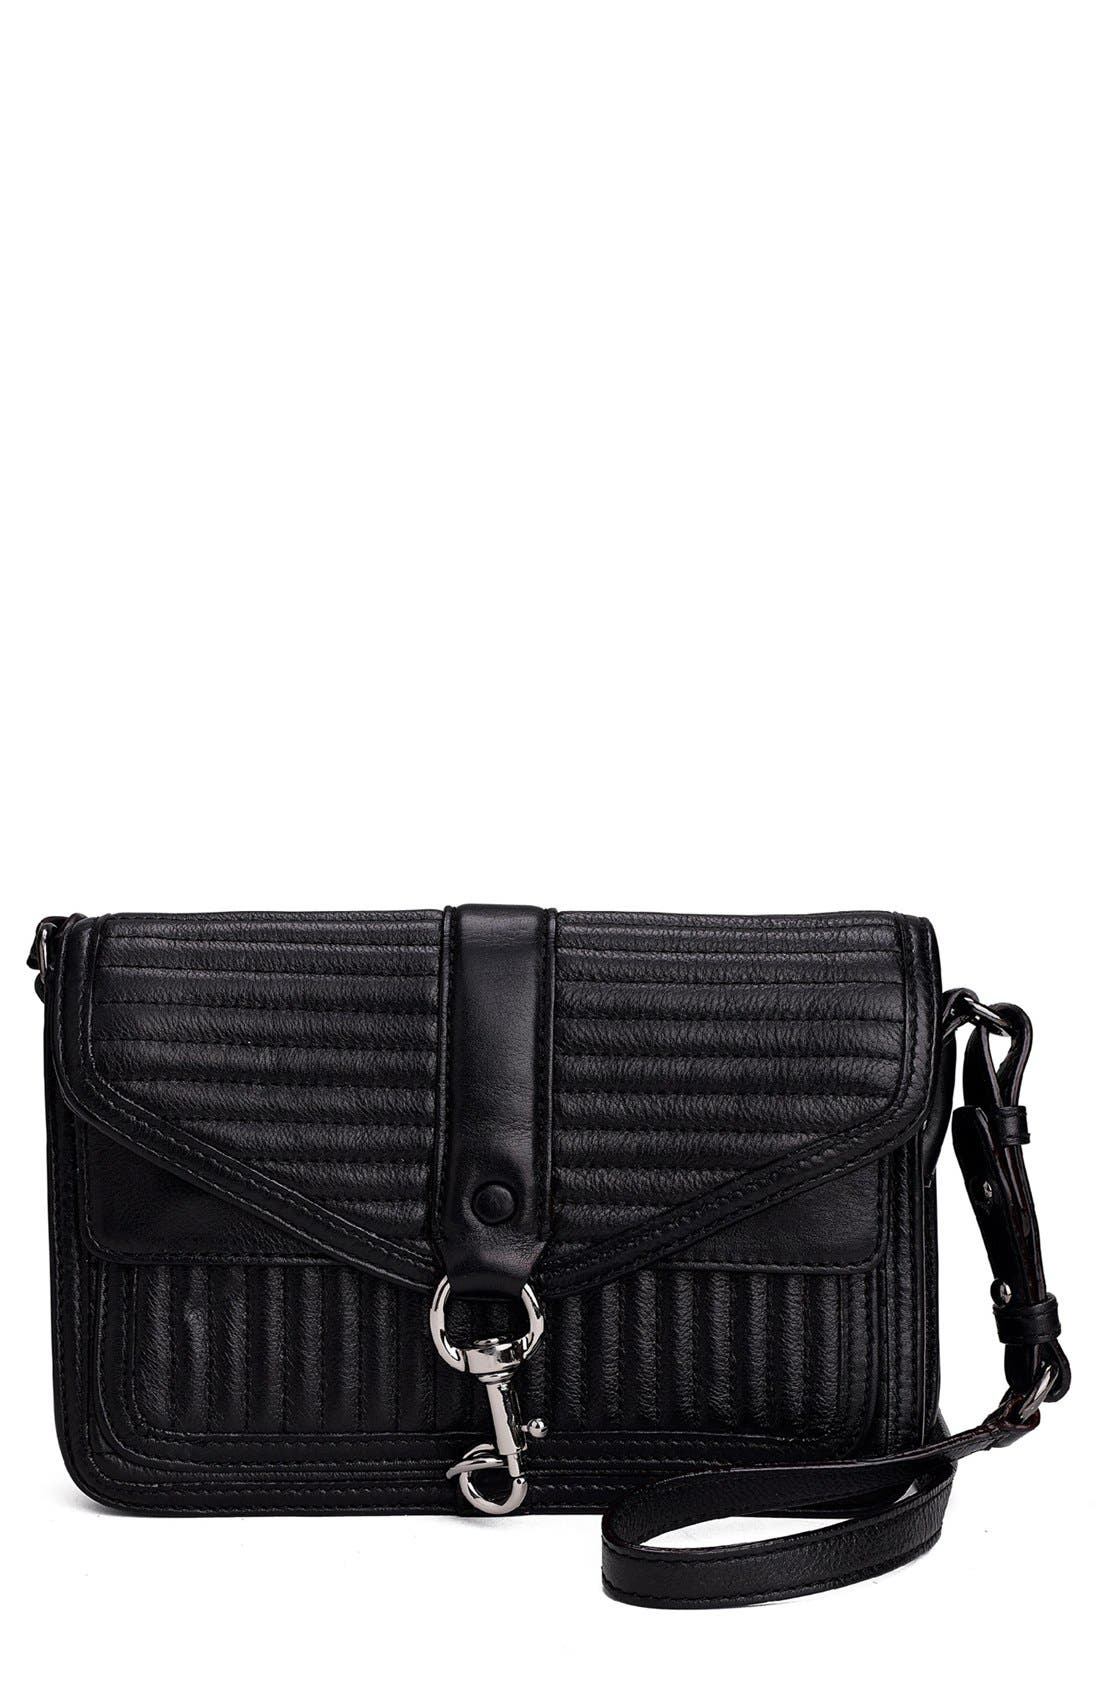 Main Image - Rebecca Minkoff 'Hudson - Moto Mini' Crossbody Bag